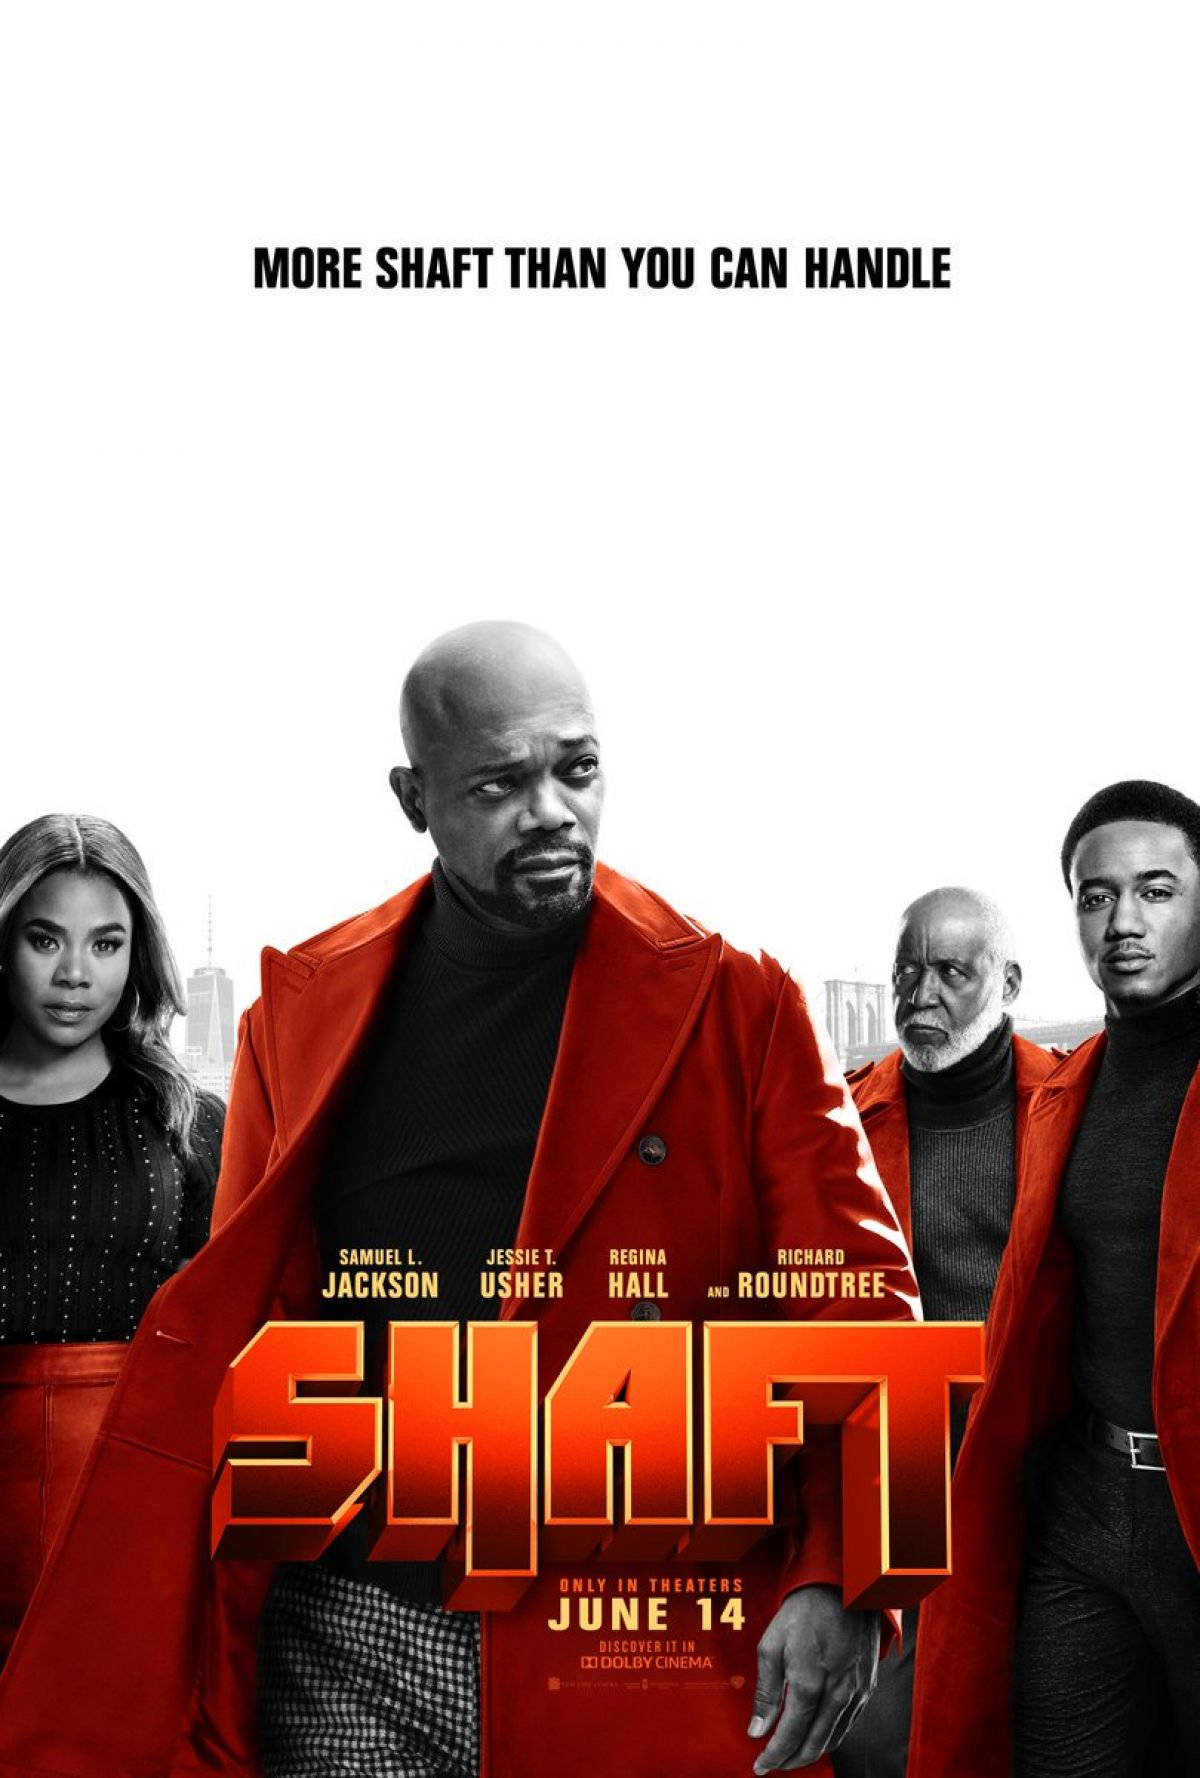 "Shaft - by Kathia Woods""Shaft"" is an icon and so was the original movie that came out in 1971. Richard Roundtree changed the narrative of the black leading man by playing a crime crusader for the people. We fast forward to 2019 and this latest incarnation of Shaft. Samuel L. Jackson is back as John Shaft Jr. and this time he's not only fighting crime but having to face his parenting failures.Jessie T. Usher formerly of ""Survivor's Remorse"" joins the franchise as J.J Shaft. He's everything his father isn't. He's polite, politically correct, respectful to women and works for the man. Regina Hall is Maya Babanikos Shaft's ex-wife and JJ's mom. Tying in the old to the new is Richard Roundtree as the original bad mutha but this time in a supporting role. I now have stated all the good things about this movie the cast.The plot is a mix-up of terrorist, drug addict mixed in with veterans suffering PTSD. This starts off a series of events connecting father and son to notorious drug pin Gordito. There was an opportunity for some great storytelling, however, it was never executed. JJ is everything Shaft Jr isn't. He grew up in the suburbs, attended college and is a data analyst for the FBI. He solves crimes via intelligence, unlike his father who likes to knock heads. JJ was sheltered and protected by his mother. John Jr. wasn't coddled. So naturally, upon the first contact, it sets up for a humorous interaction. So please explain why the writers opted to go for predictable dialogue. We know that Shaft is a lady's man, but did we really need to see him with glitter around his mouth. Also, the usage of the P word as in cat to assess JJ's manhood also didn't help matters.Regina Hall coming off a great year was misused in this film. She has great comedic timing but was relegated to a chick role. In other words, she wasn't given much to do. Alexander Shipp is Sasha Aries JJ's childhood friend and crush. She too was relegated to playing pretty.Wait it gets worse. There's great banter between Father and Son as they try to get to know each other while solving the said crime. The sad part is that it's clouded amongst homophobia and misogyny. If this were 1974 this might work but it's 2019. You can make a movie about a sexy private eye without resorting to frat humor. I have given up on getting quality from Samuel L. Jackson. It's obvious he's check chasing however Reginal Hall and Jessie T. Usher deserved better. Kenya Barris yes ""Blackish"" creator helped pen this juvenile script. Shaft provides a few chuckles but is it worth the price of admission. The answer is a hard NO. Don't even rent this just wait for it to appear on HBO or BET.This is just a colossal waste of time.Scale: This movie receives a two for horrendous."